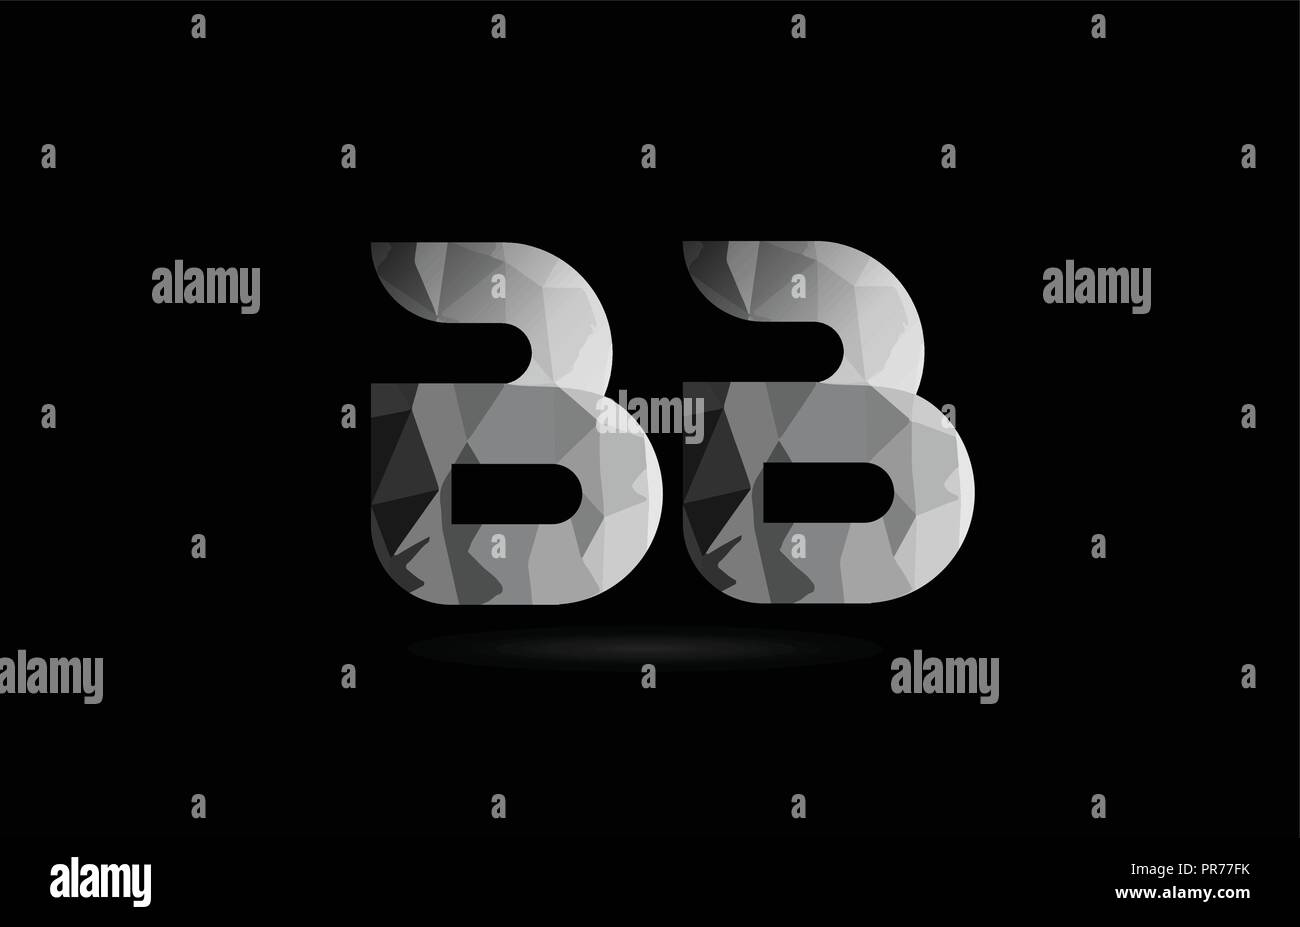 Black And White Alphabet Letter Bb B B Logo Combination Design